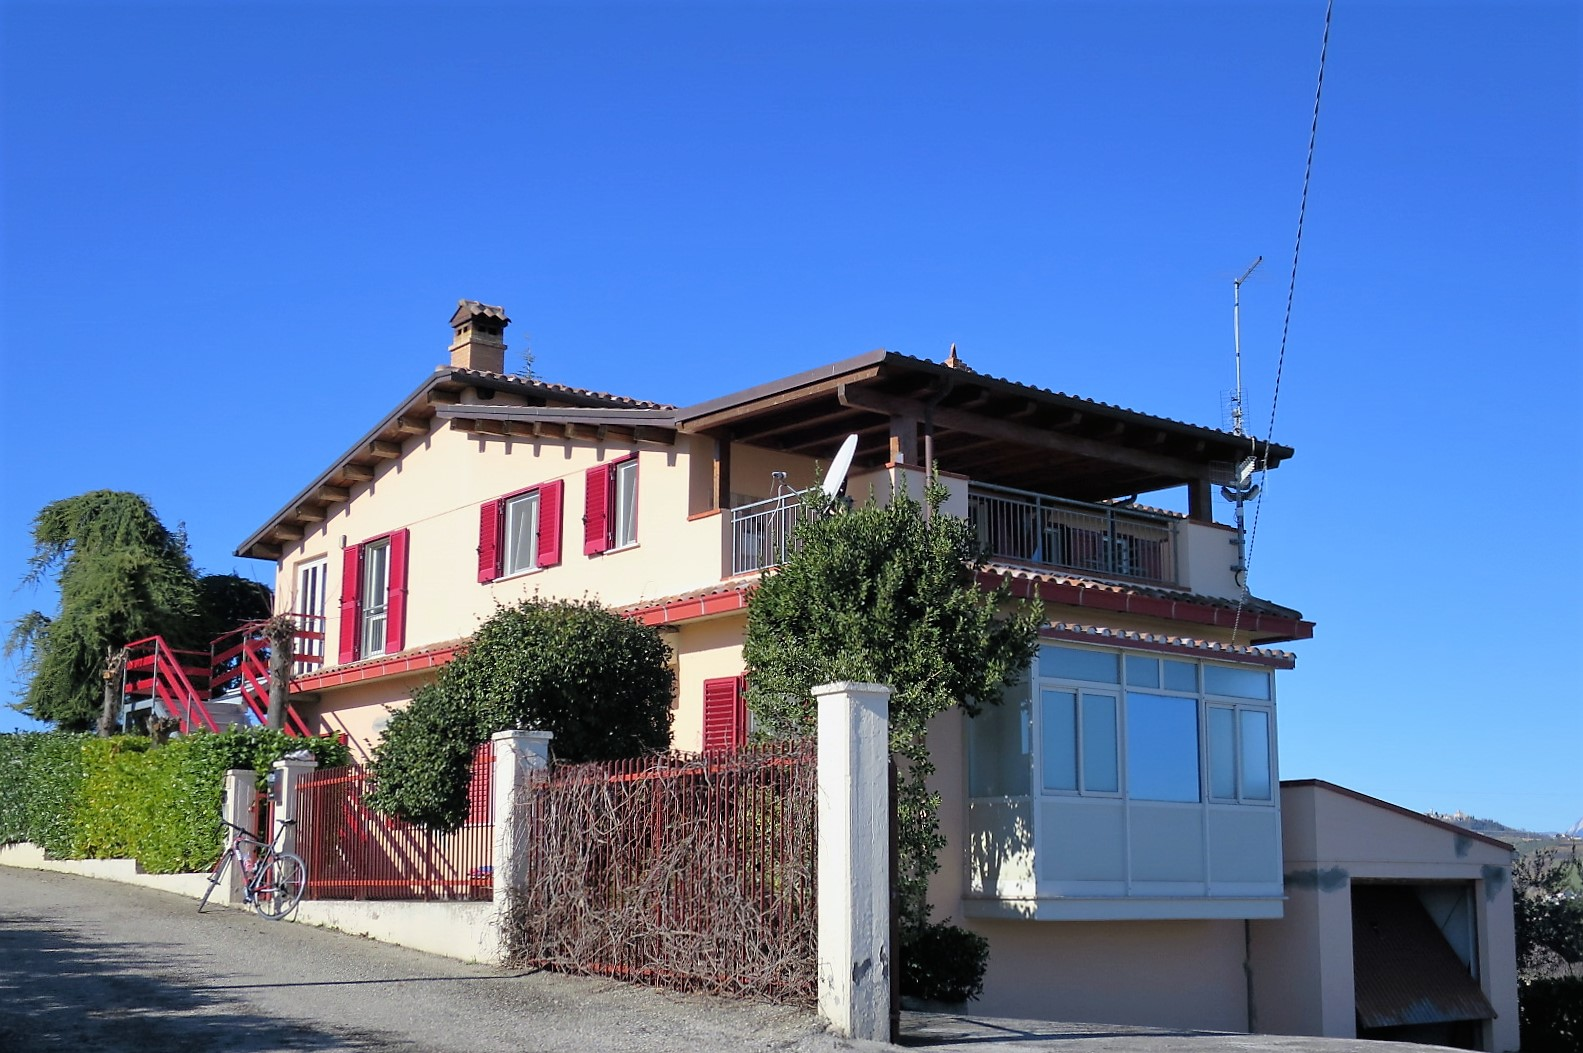 Country Houses Country Houses for sale Cellino Attanasio (TE), Casa Feudi - Cellino Attanasio - EUR 198.728 10